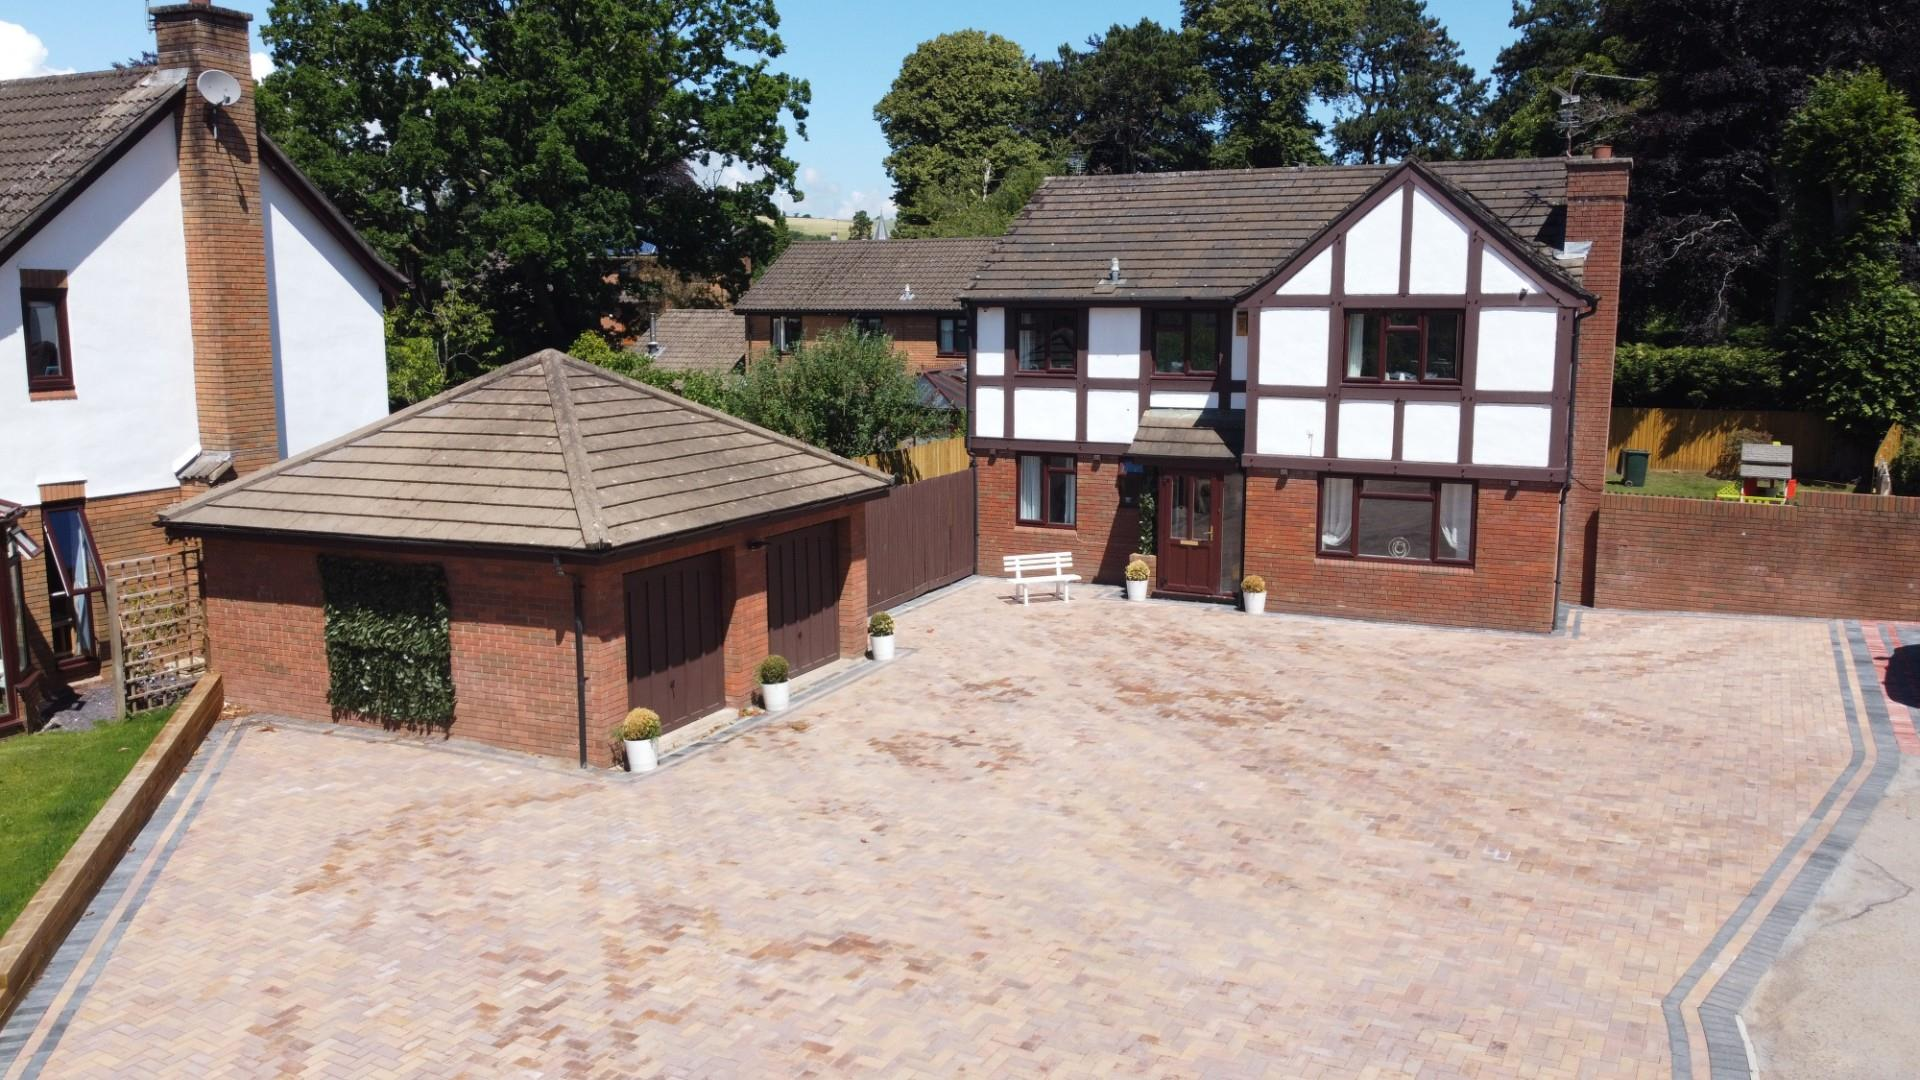 4 bed detached house for sale in Tynewydd Drive, Cardiff 0